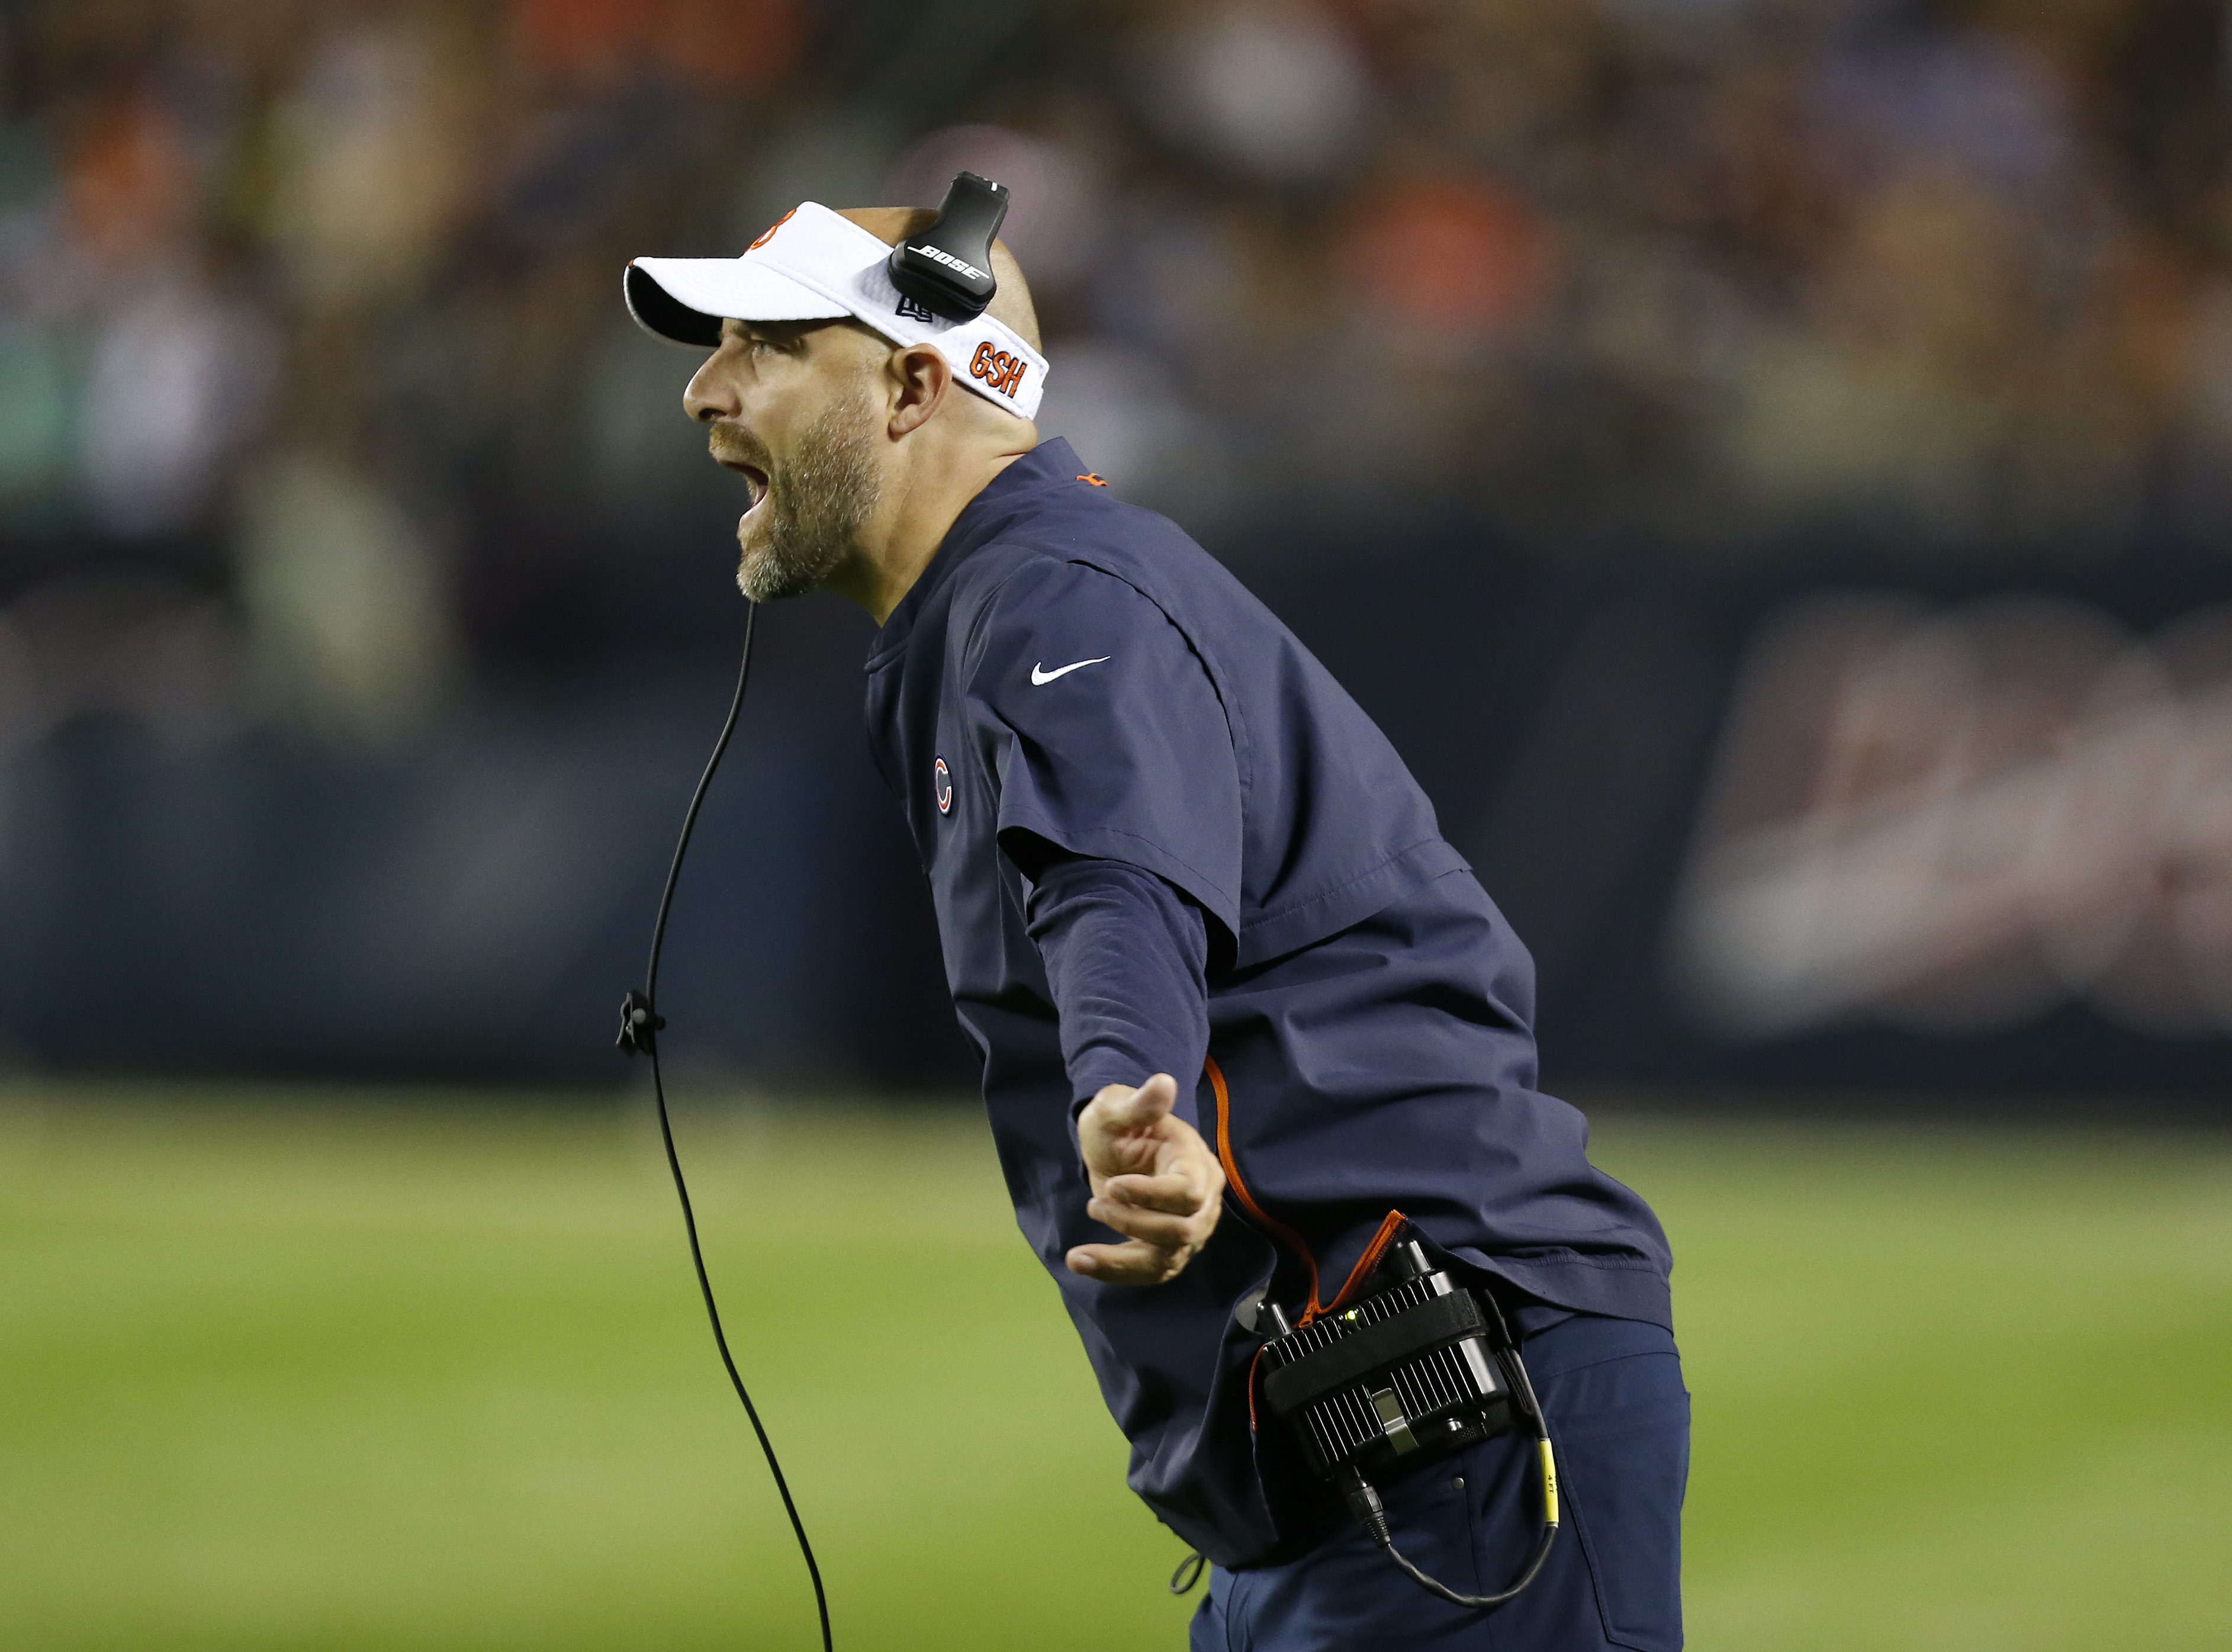 Bears coach Matt Nagy is trying to keep negativity away from his team after a brutal loss to the Saints on Sunday.